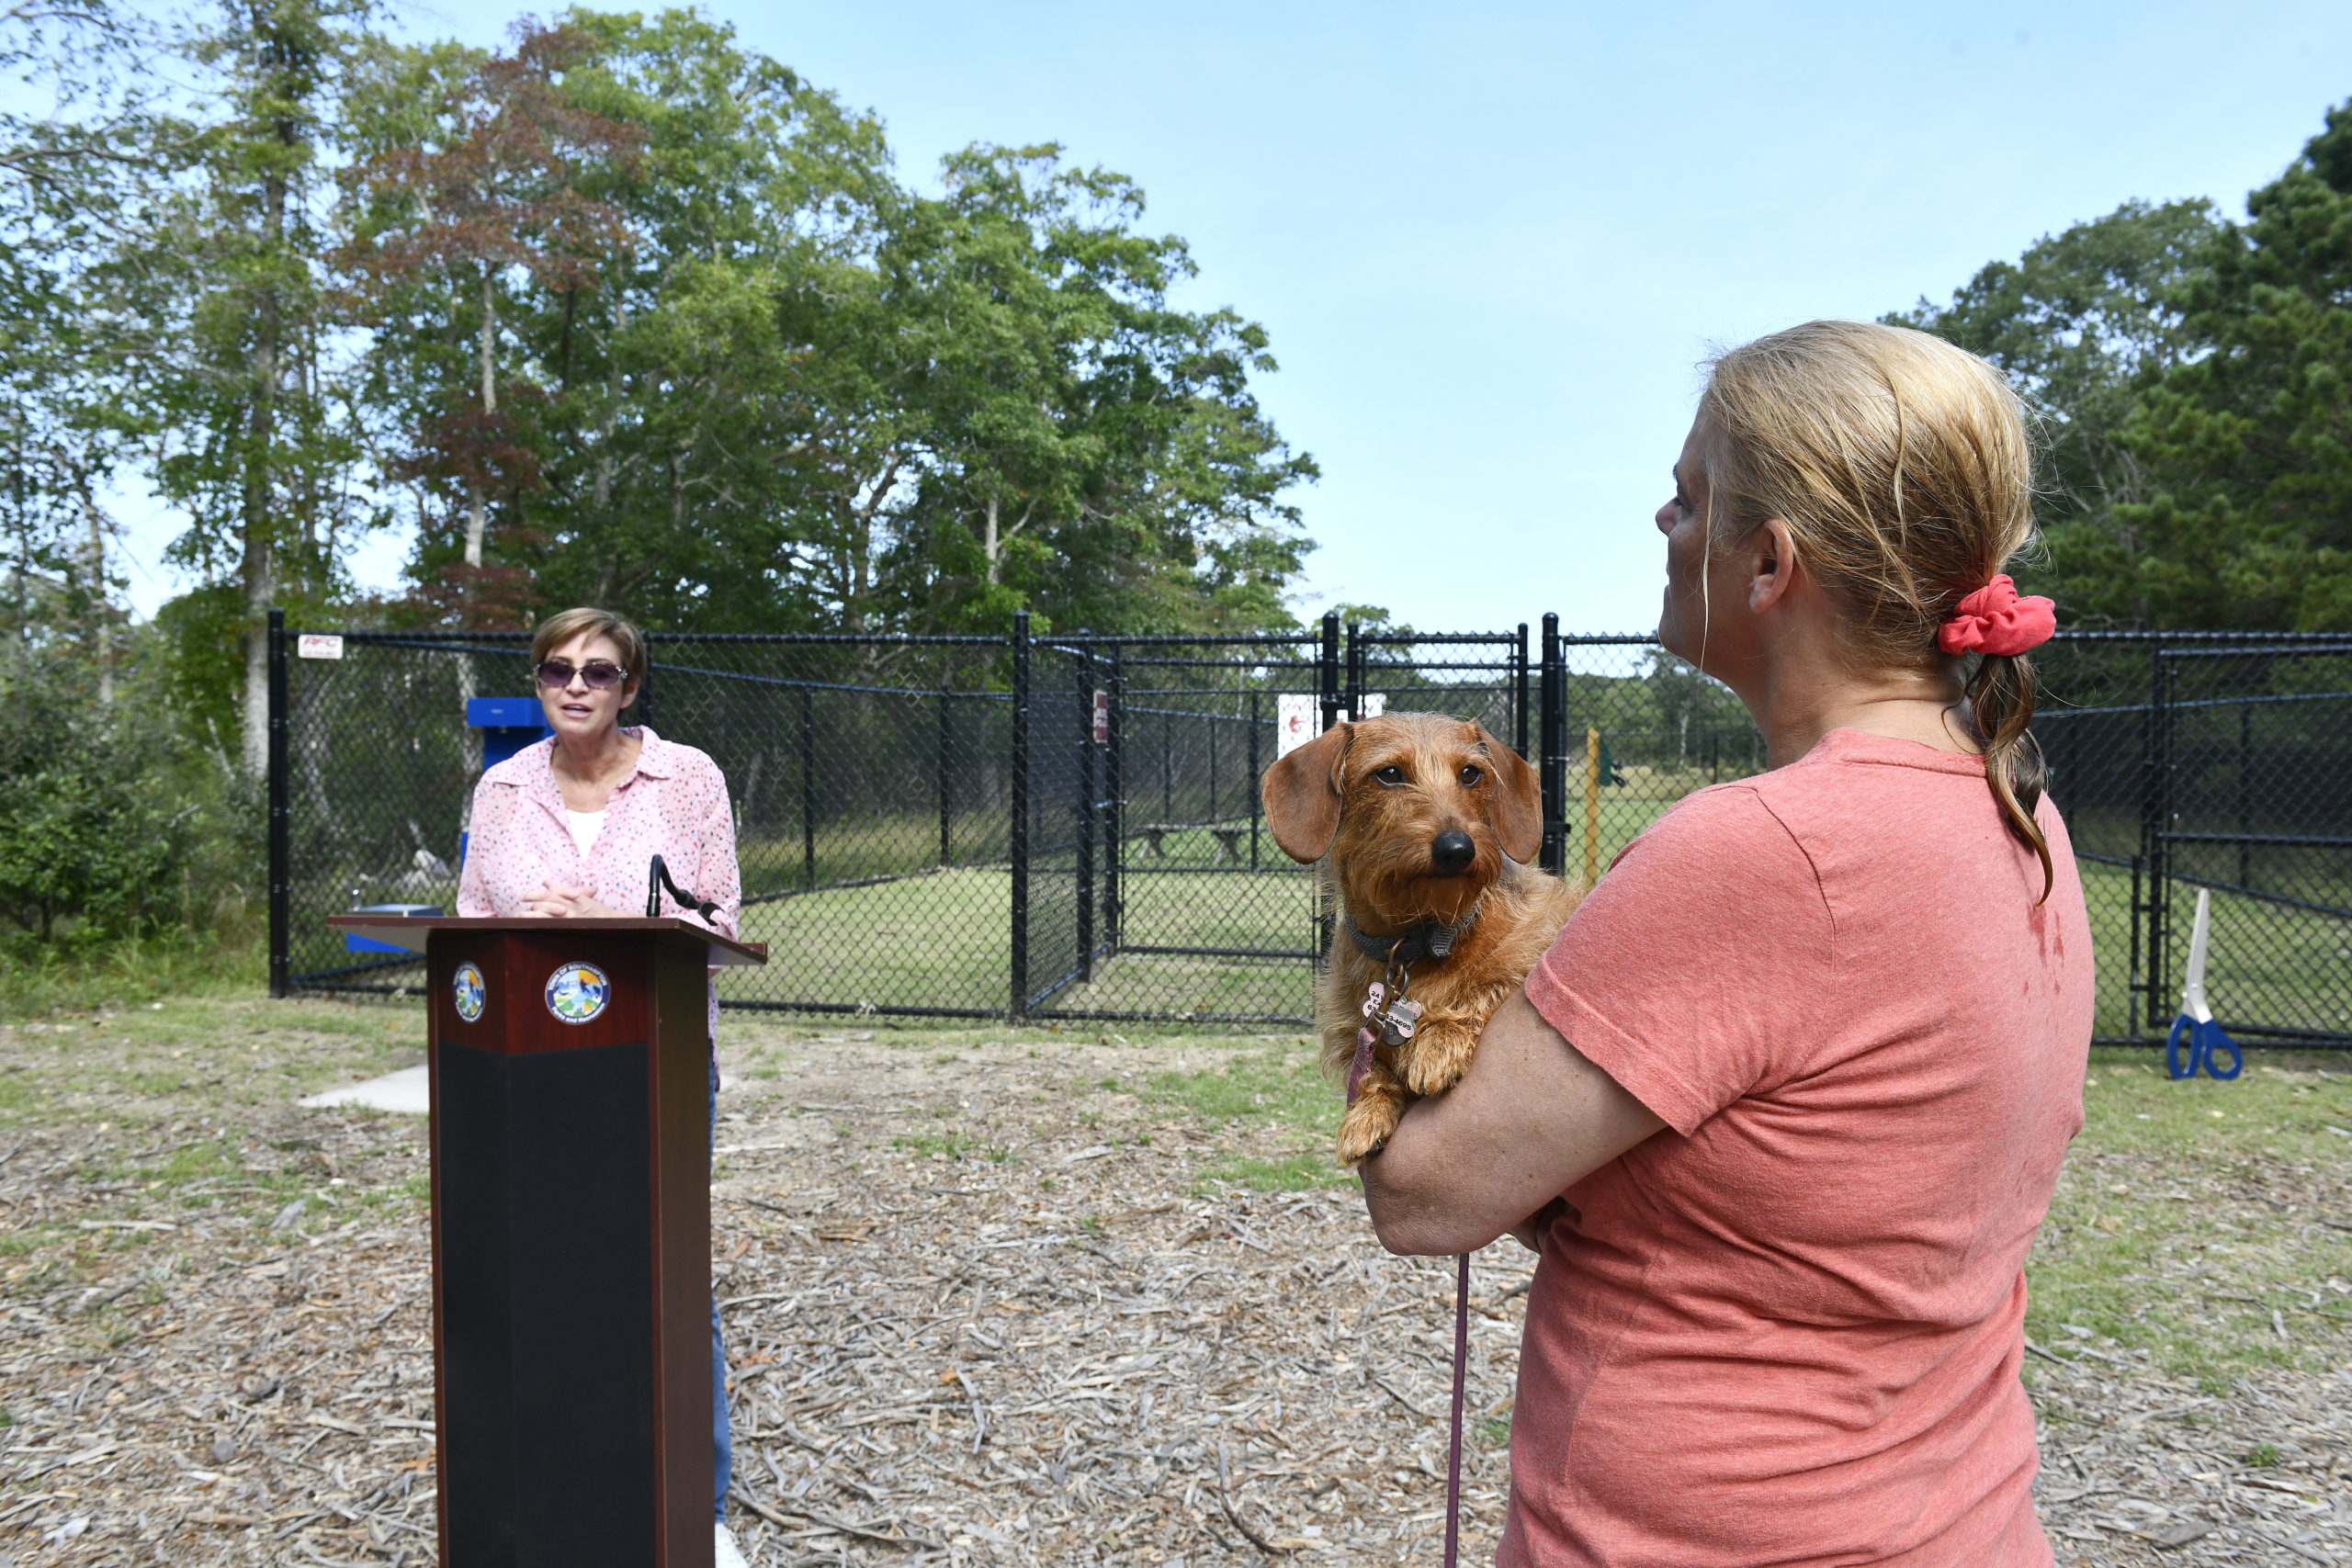 Southampton Town Councilwoman Julie Lofstad welcomes guests to the opening of he Off the Leash Dog Park in East Quogue on Monday morning. The park is located at Pine Neck Marina, 22 Josiah Foster Path in East Quogue.   DANA SHAW